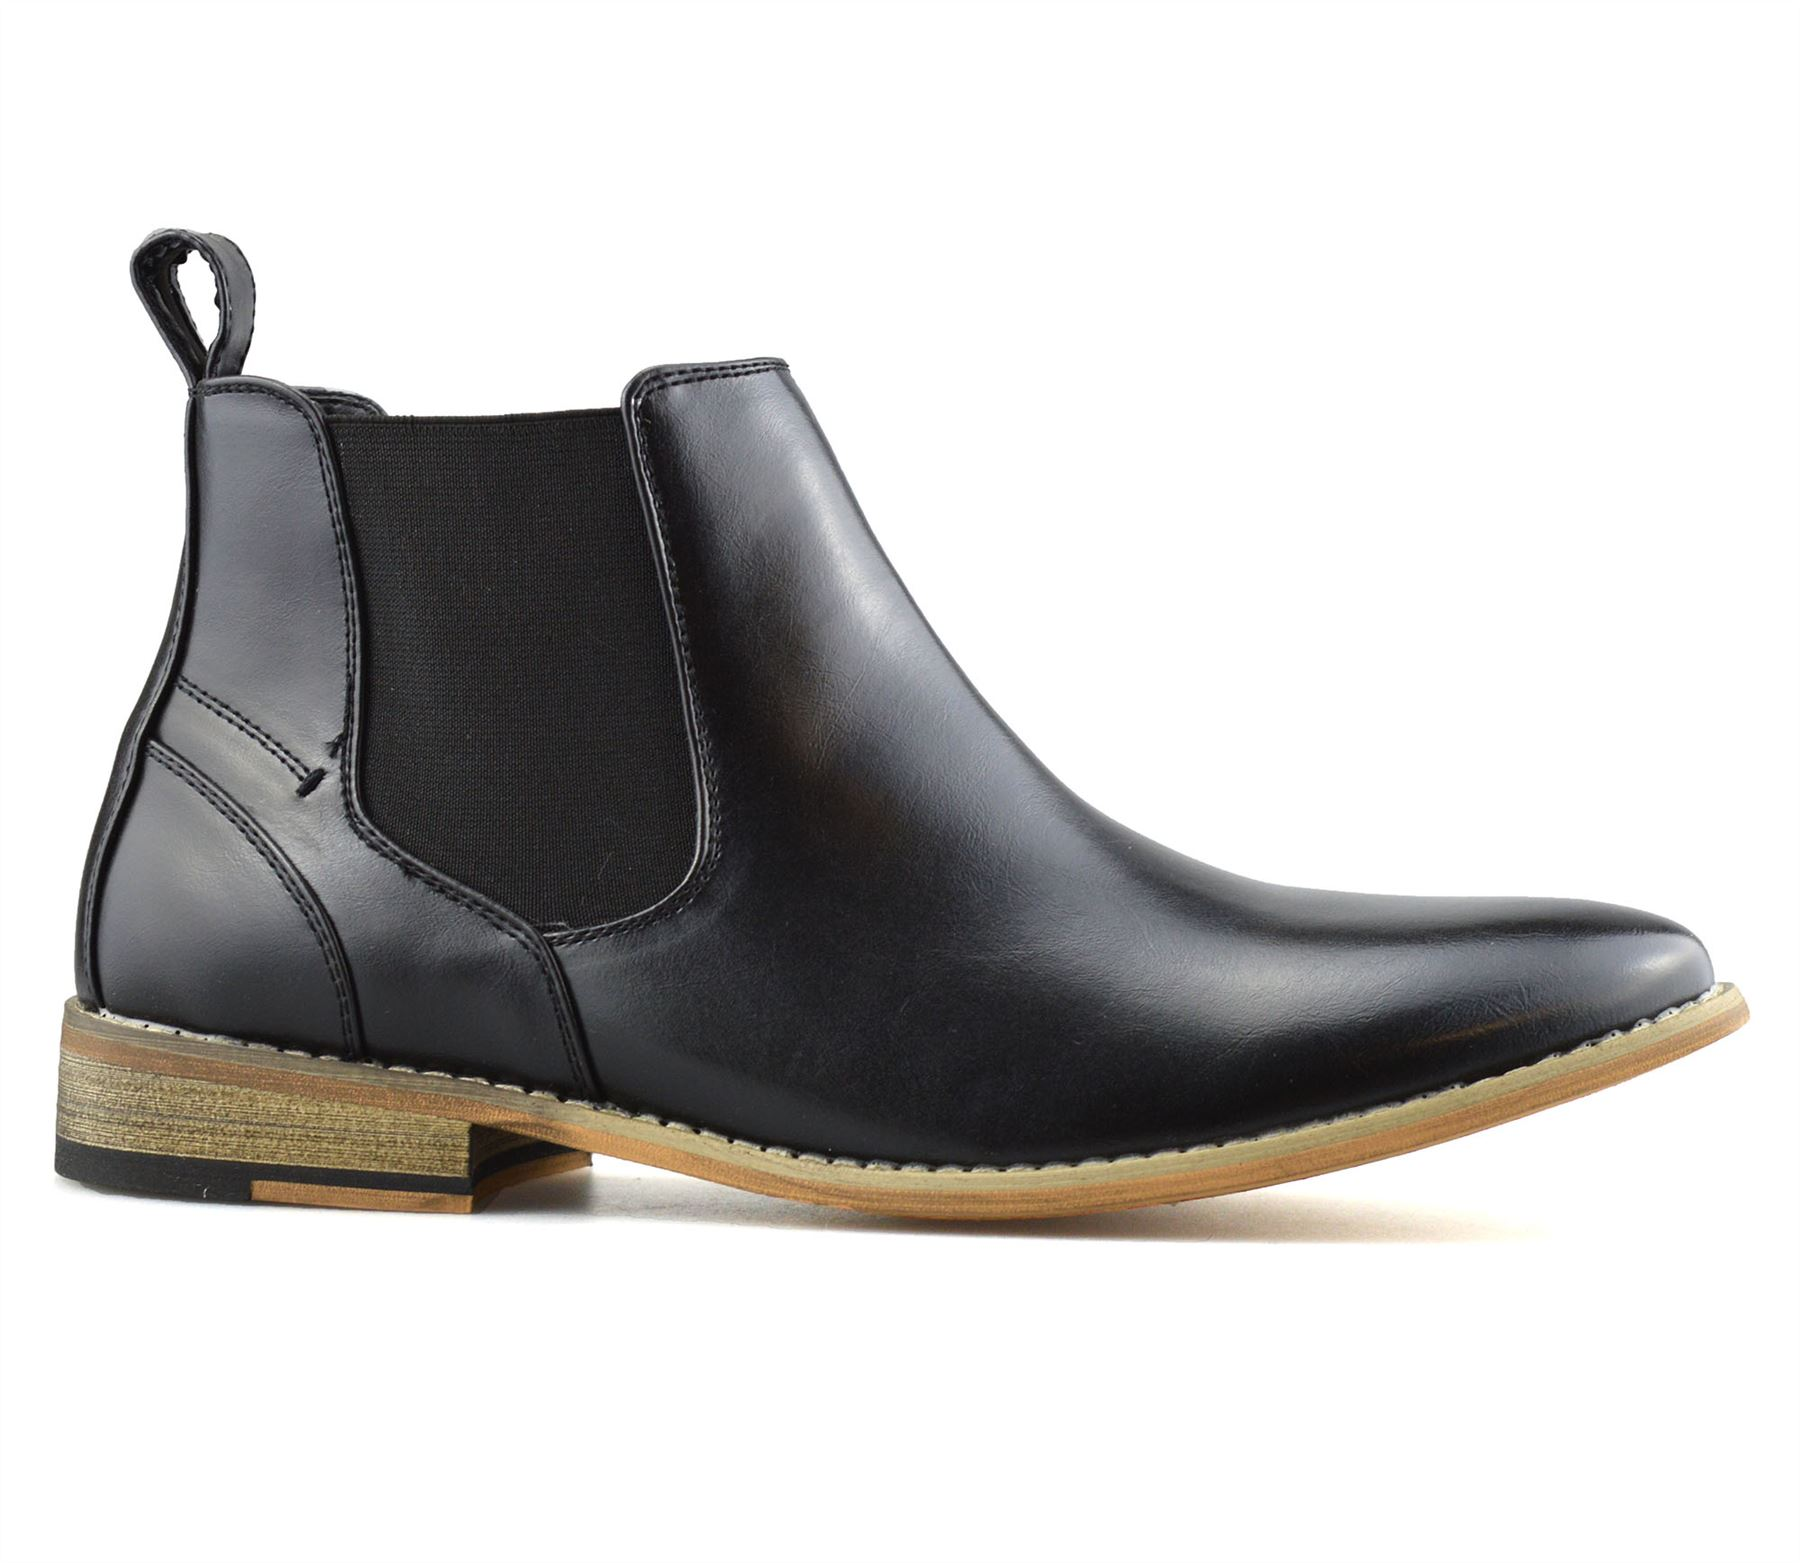 Mens-Memory-Foam-Chelsea-Ankle-Boots-Casual-Smart-Formal-Dealer-Work-Shoes-Size thumbnail 11